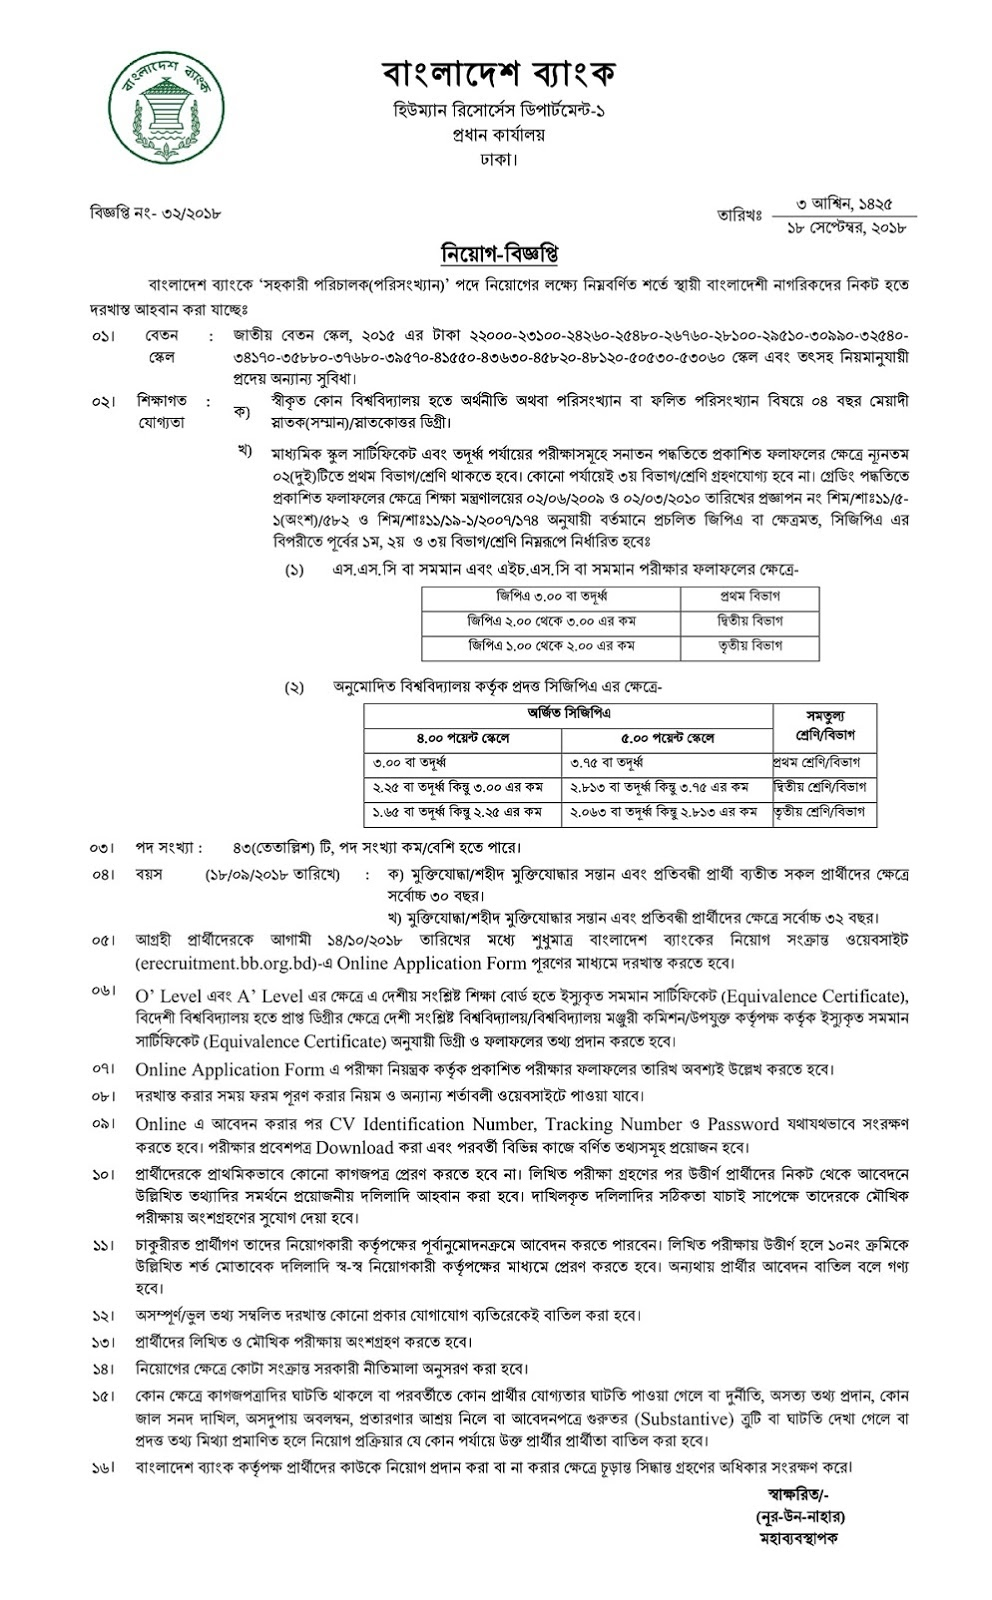 Bangladesh Govt Sonali Bank limited Jobs Circular Online Apply Now 2018